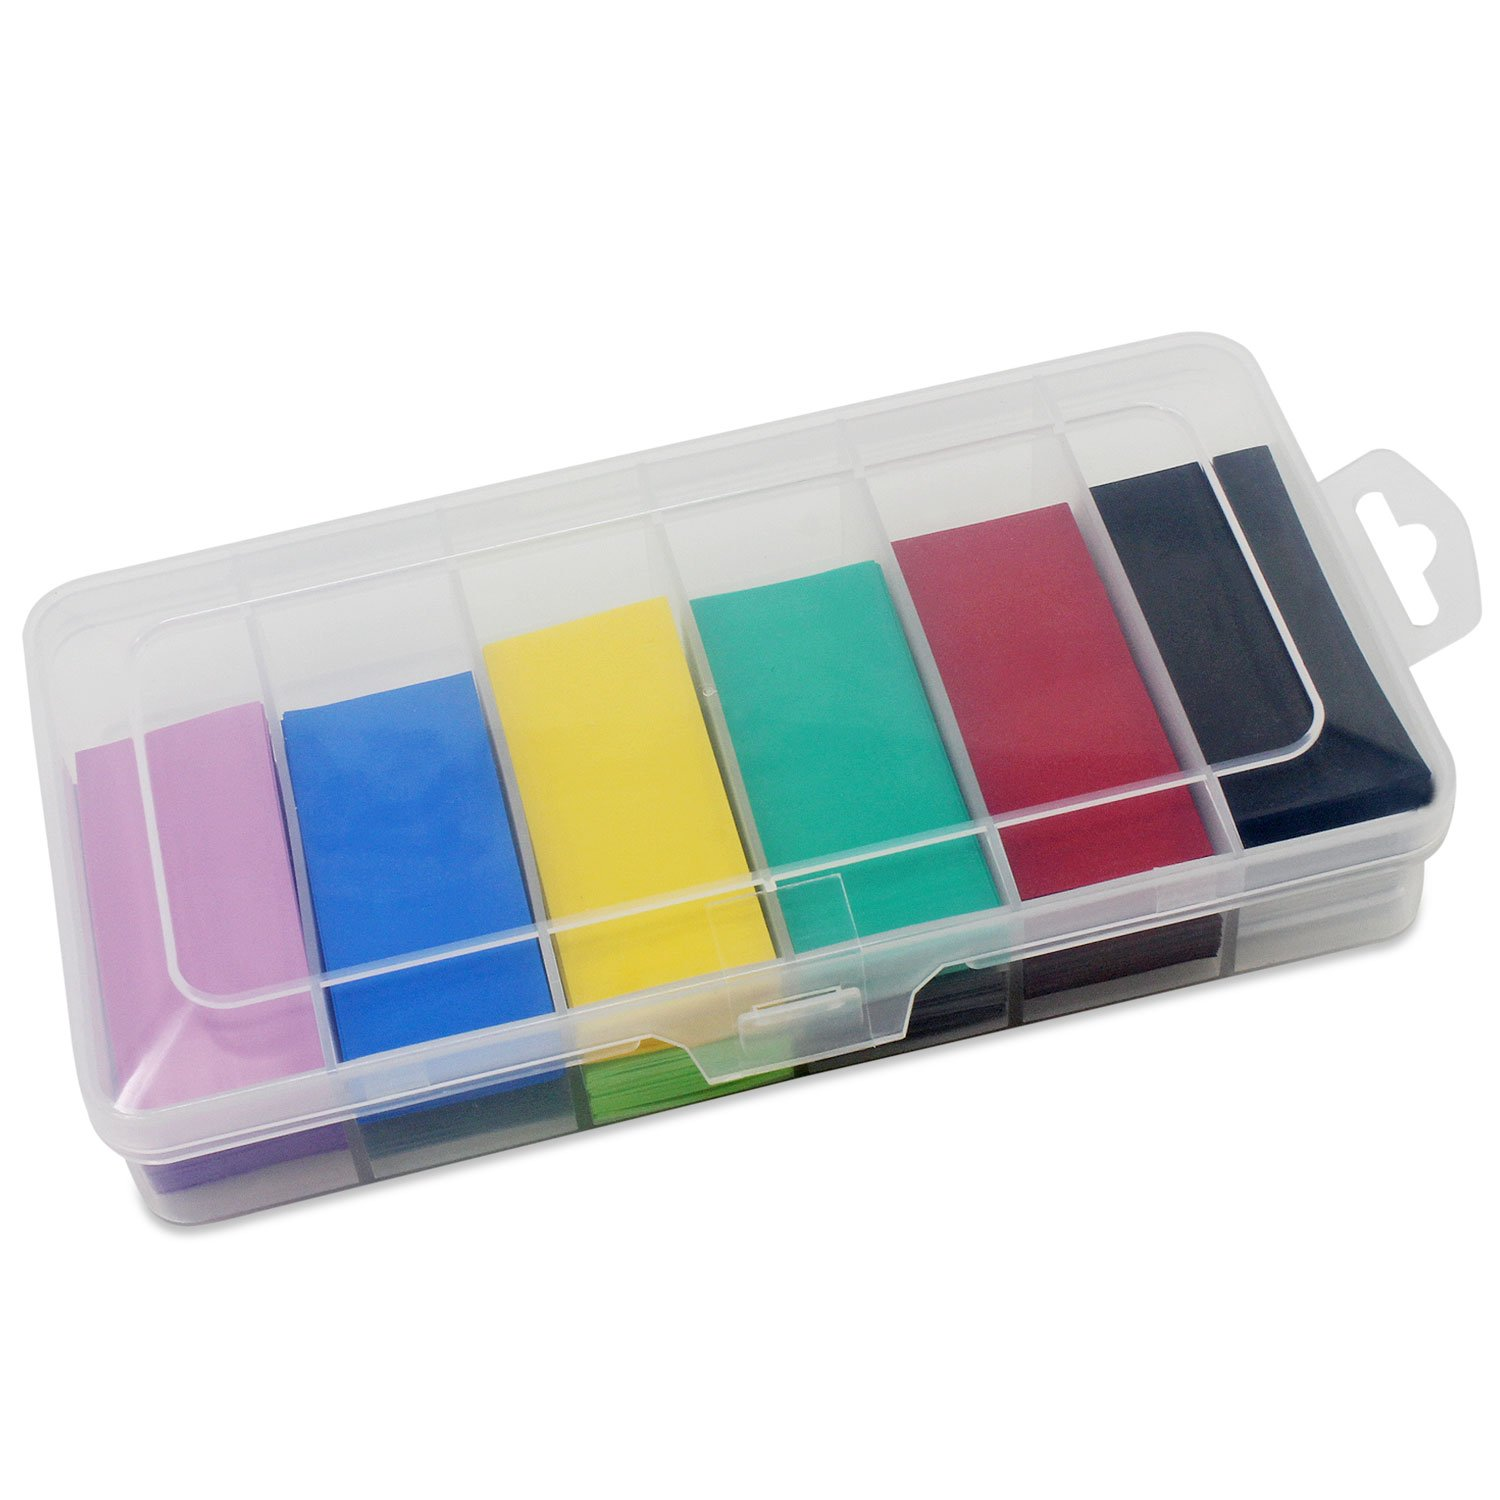 OCR Flat PVC Heat Shrink Tubing Battery Wrap for 1 x 18650 Battery 300PCS(29.5mm12 Colors) by OCR (Image #2)